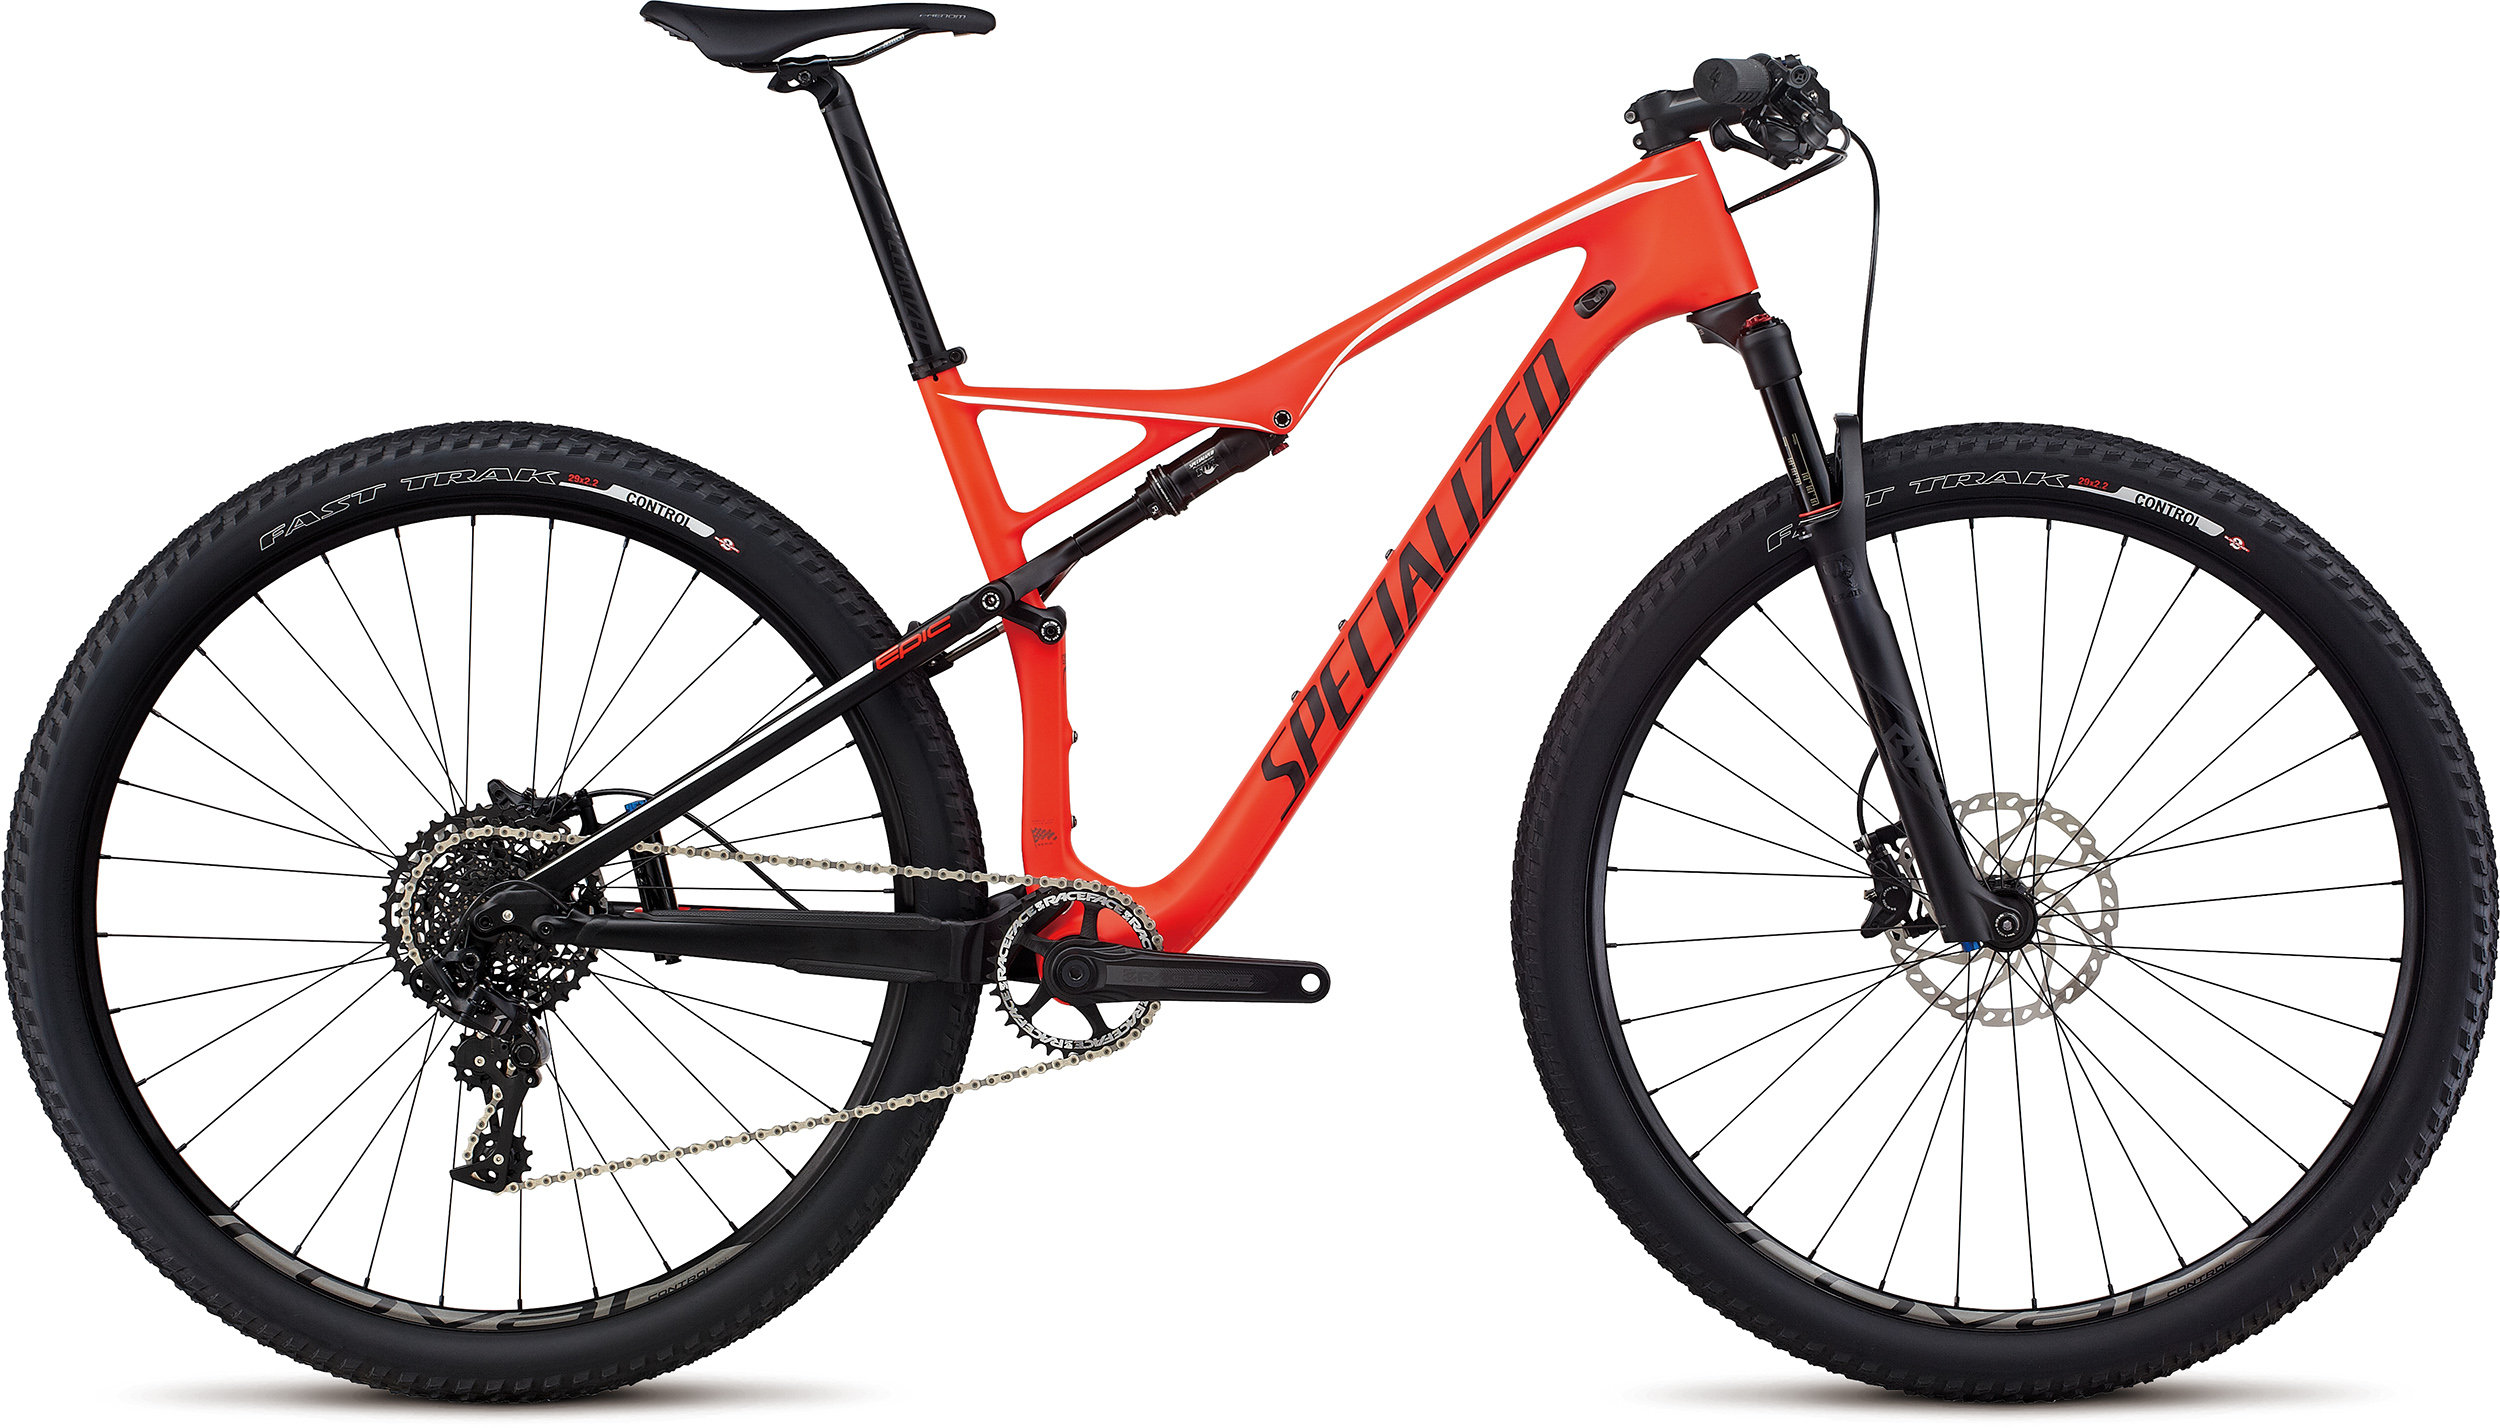 SPECIALIZED EPIC FSR EXPERT CARBON WC 29 RKTRED/BLK/WHT M - SPECIALIZED EPIC FSR EXPERT CARBON WC 29 RKTRED/BLK/WHT M